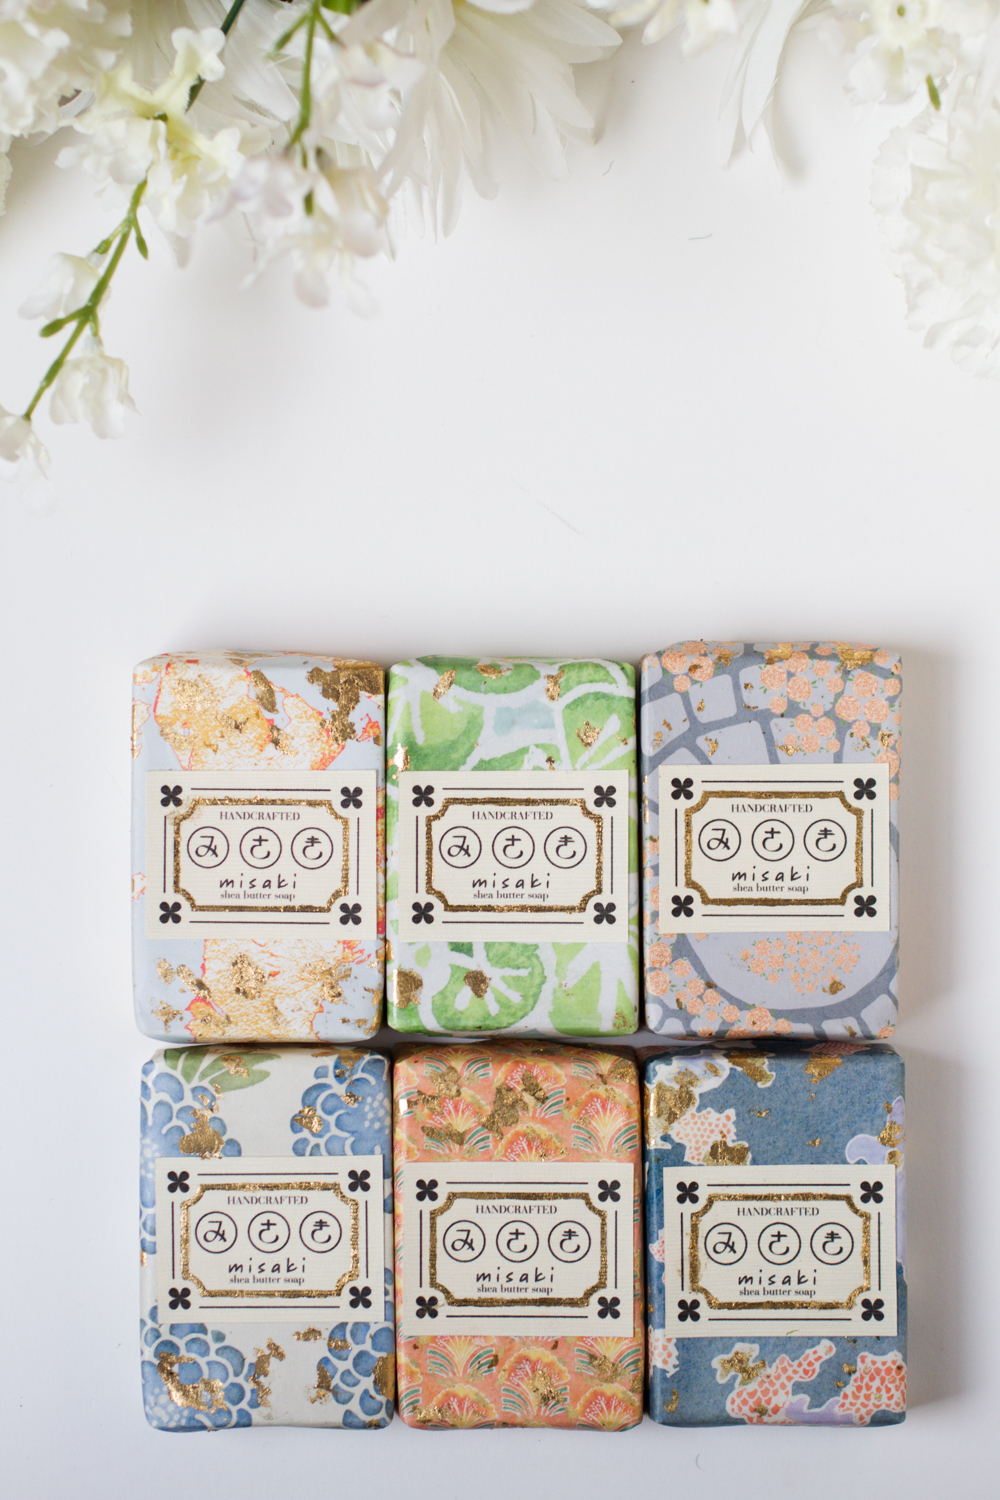 Mock up of a fictional soap brand, Misaki. Inspired by Chinese and Japanese imagery along with imagery that surrounds me daily, I wanted to transform and abstract these images into patterns that can be used for packaging. Soaps are handcrafted shea butter soaps infused with grapefruit and sandalwood essential oils with poppy seeds for exfoliation.